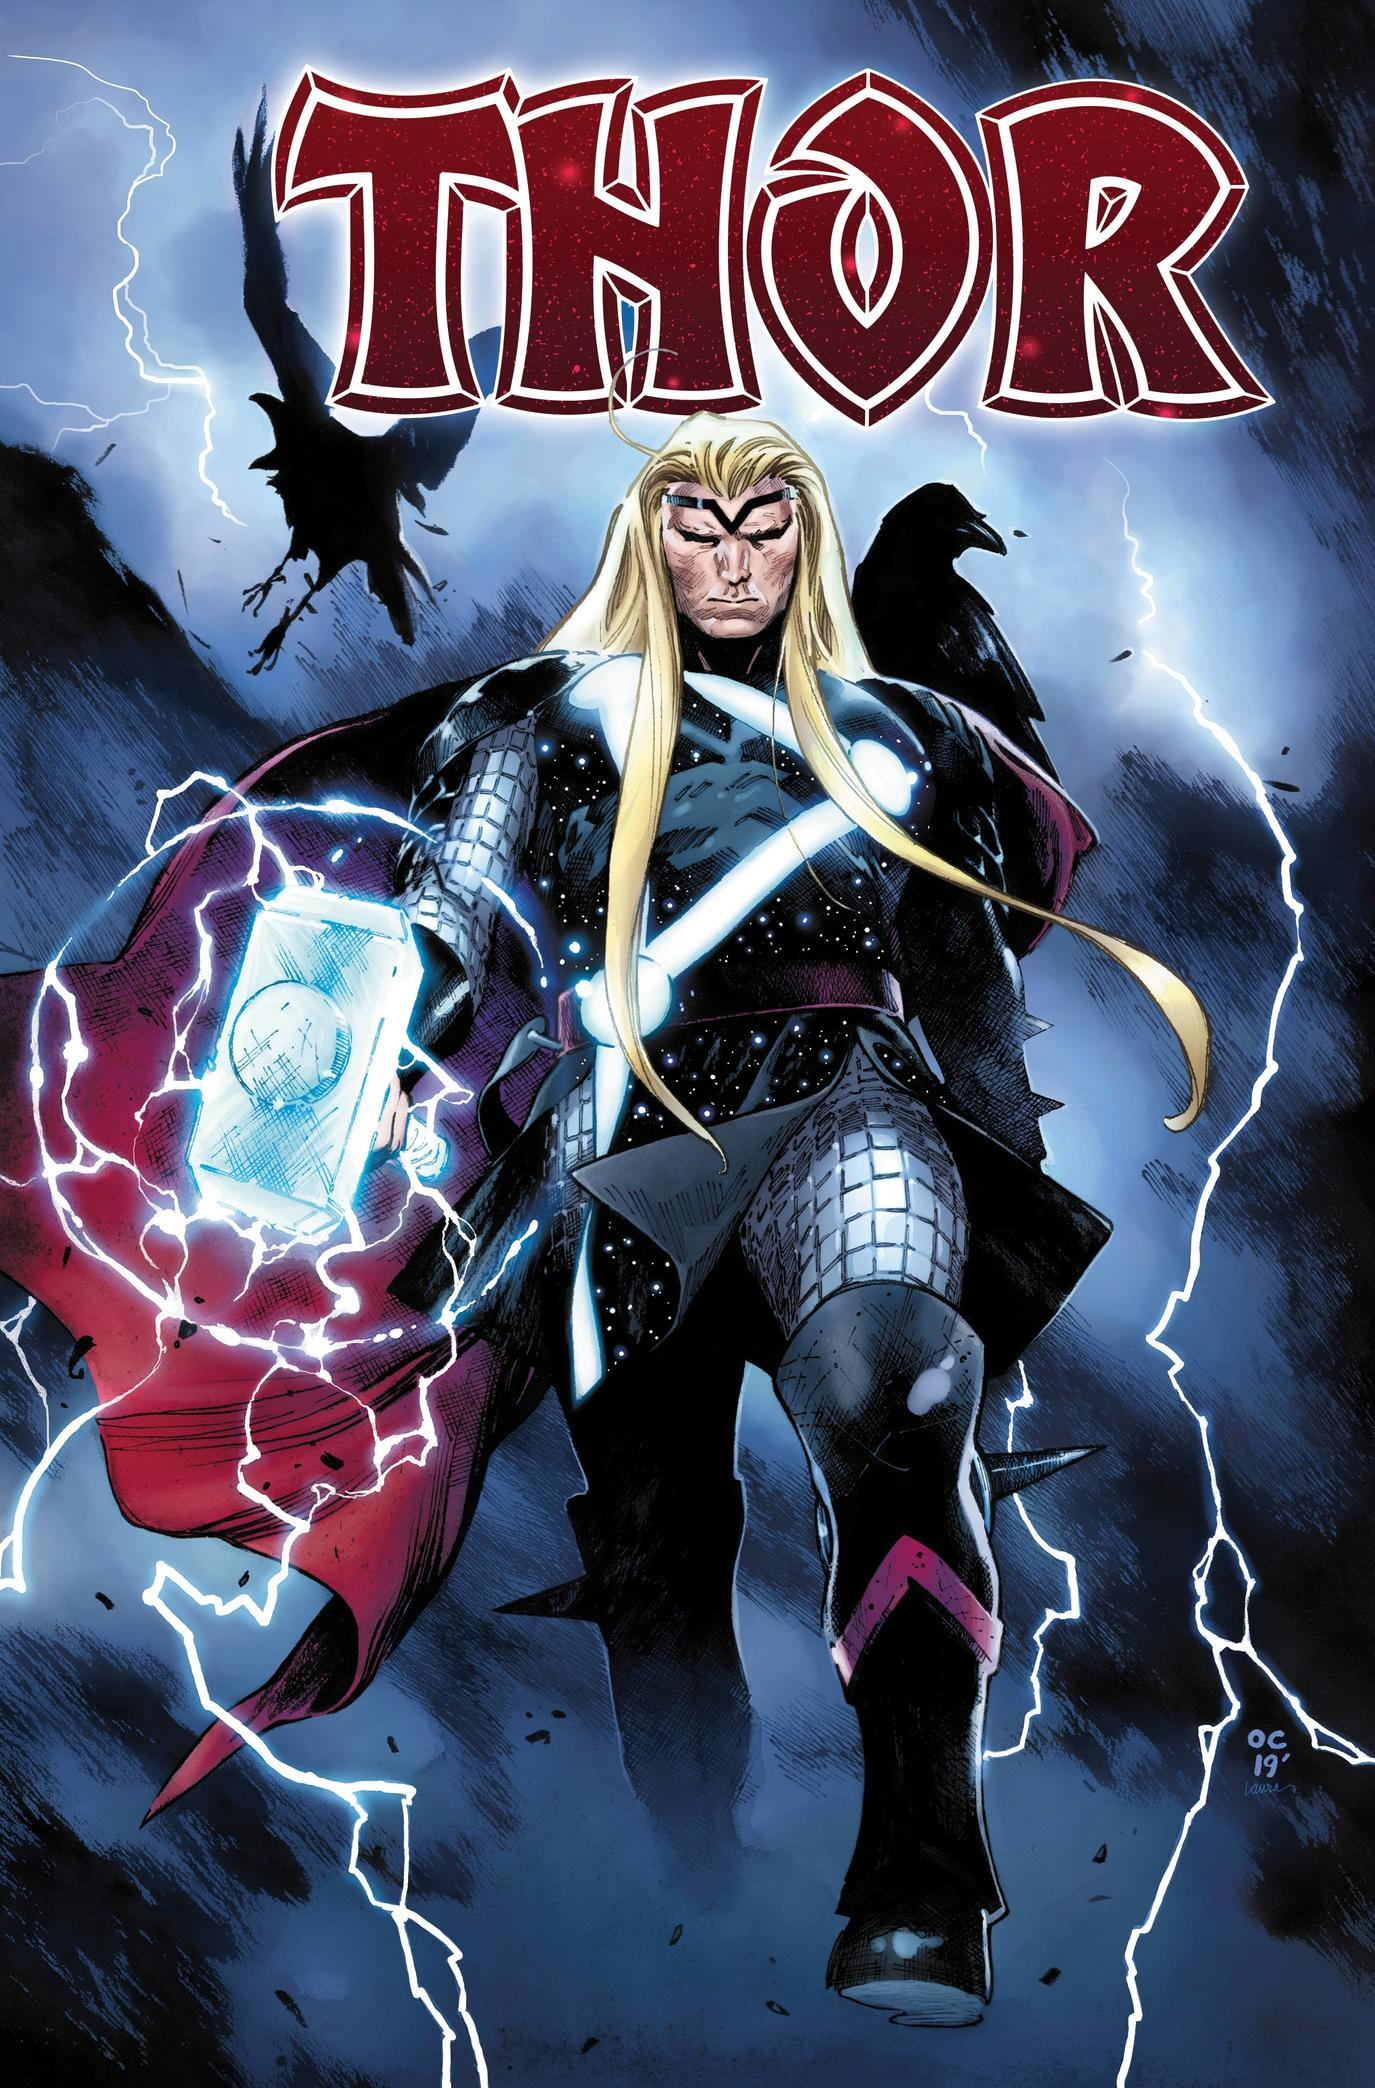 Cover art by Olivier Coipel with colors by Laura Martin